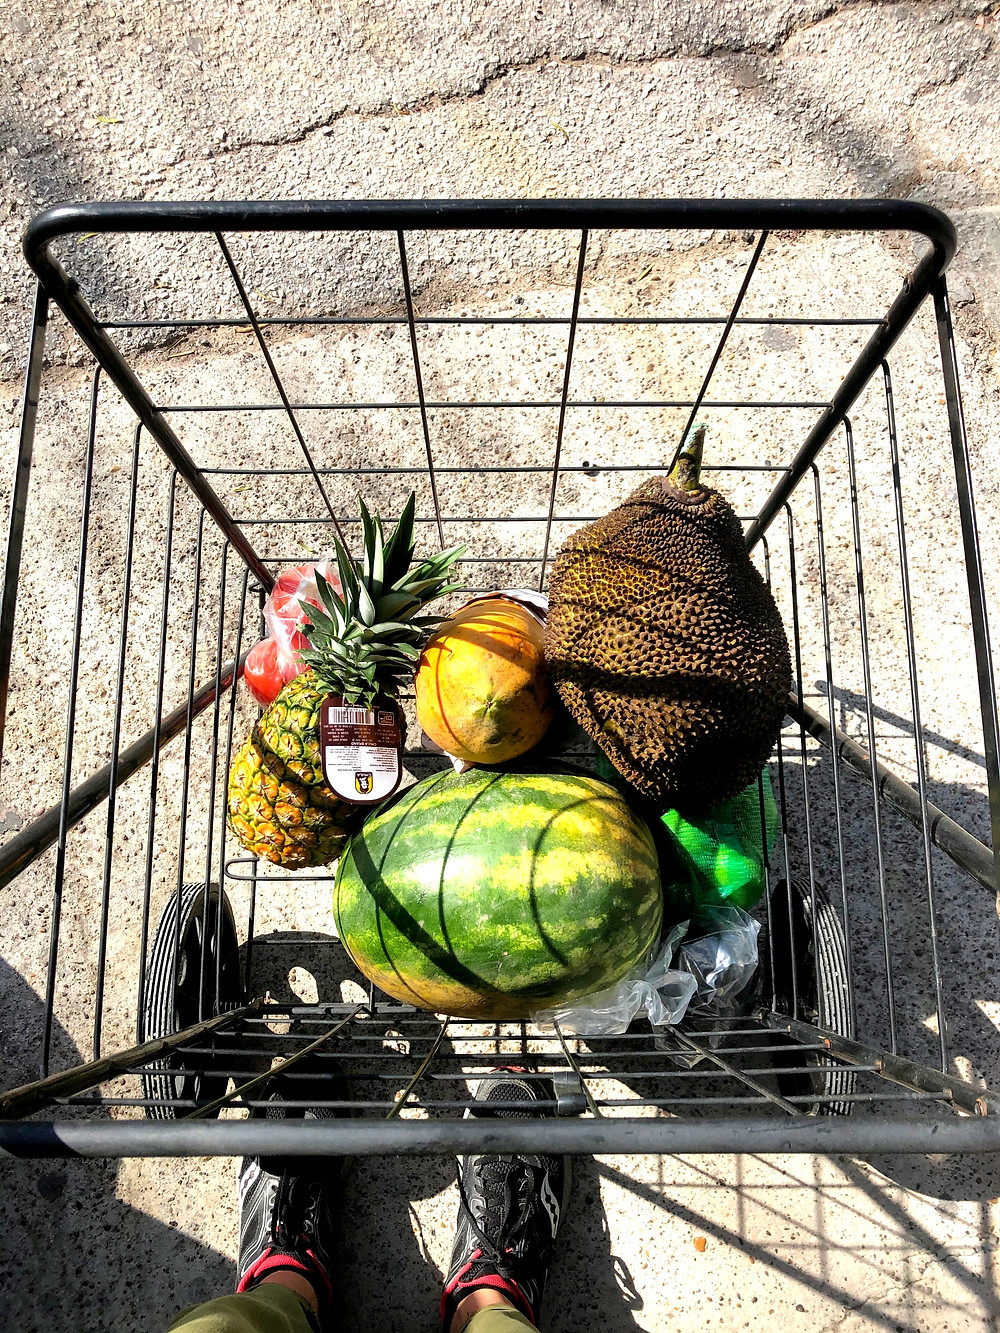 Cart with fruits in it.